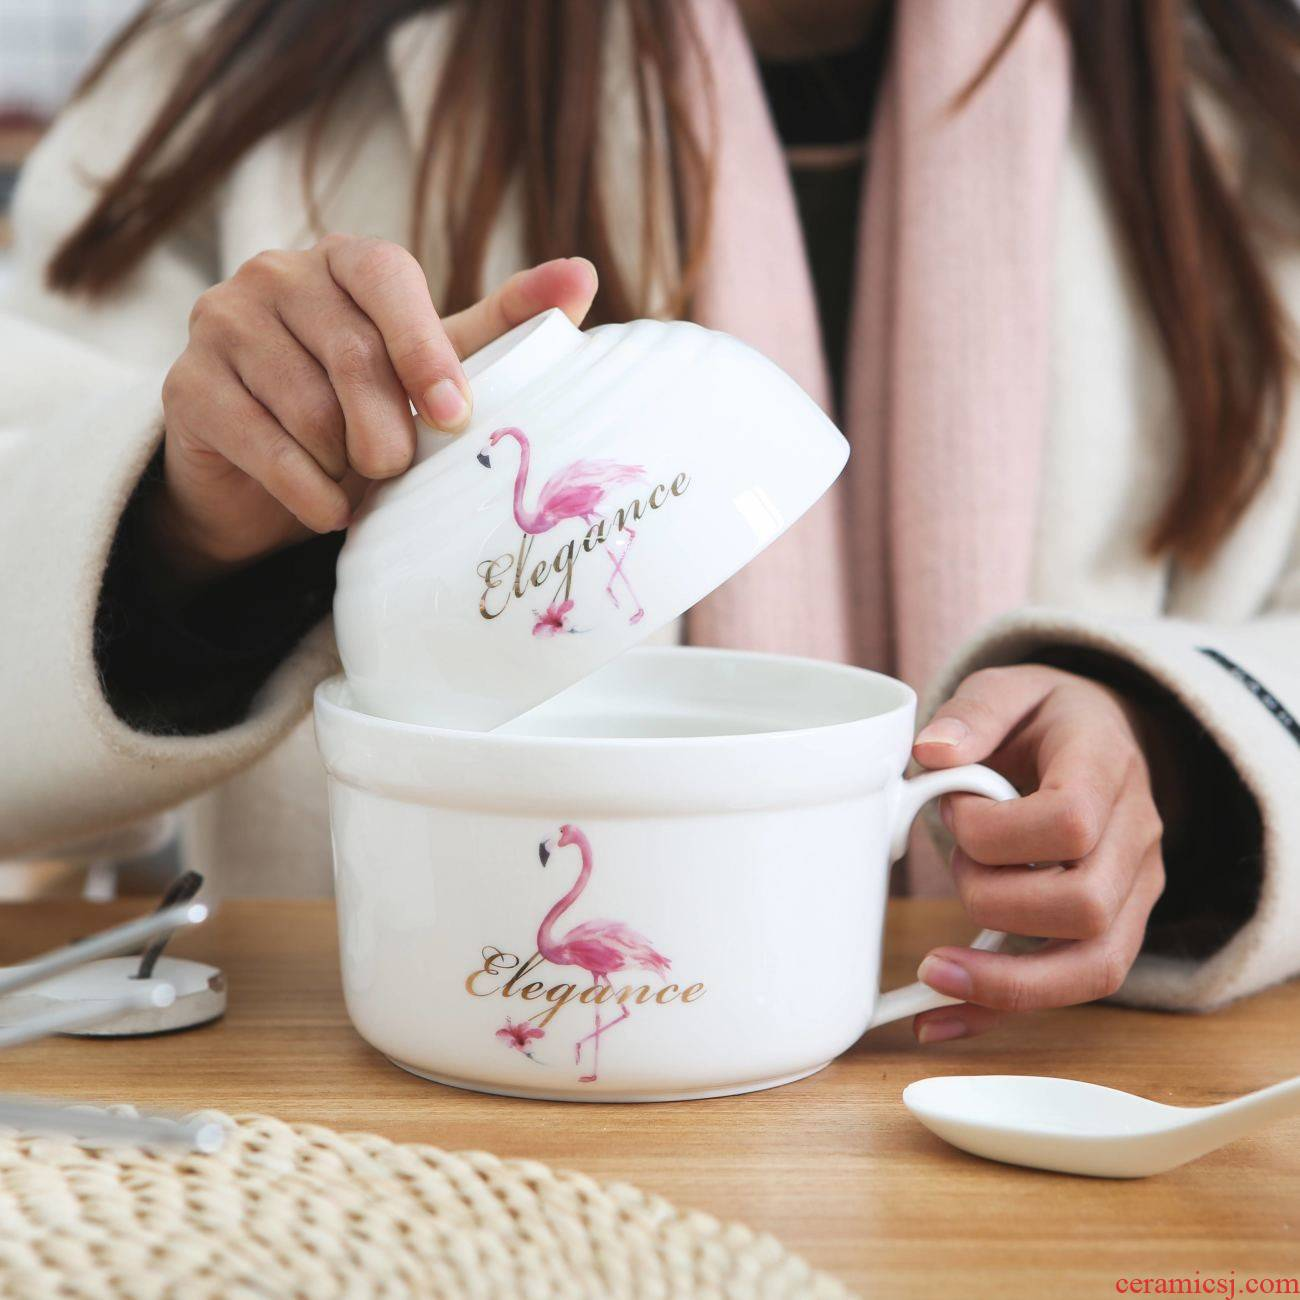 The Japanese large soup bowl kitchen lovely creative cartoon cup noodles take over rice bowl chopsticks household ceramics tableware suit